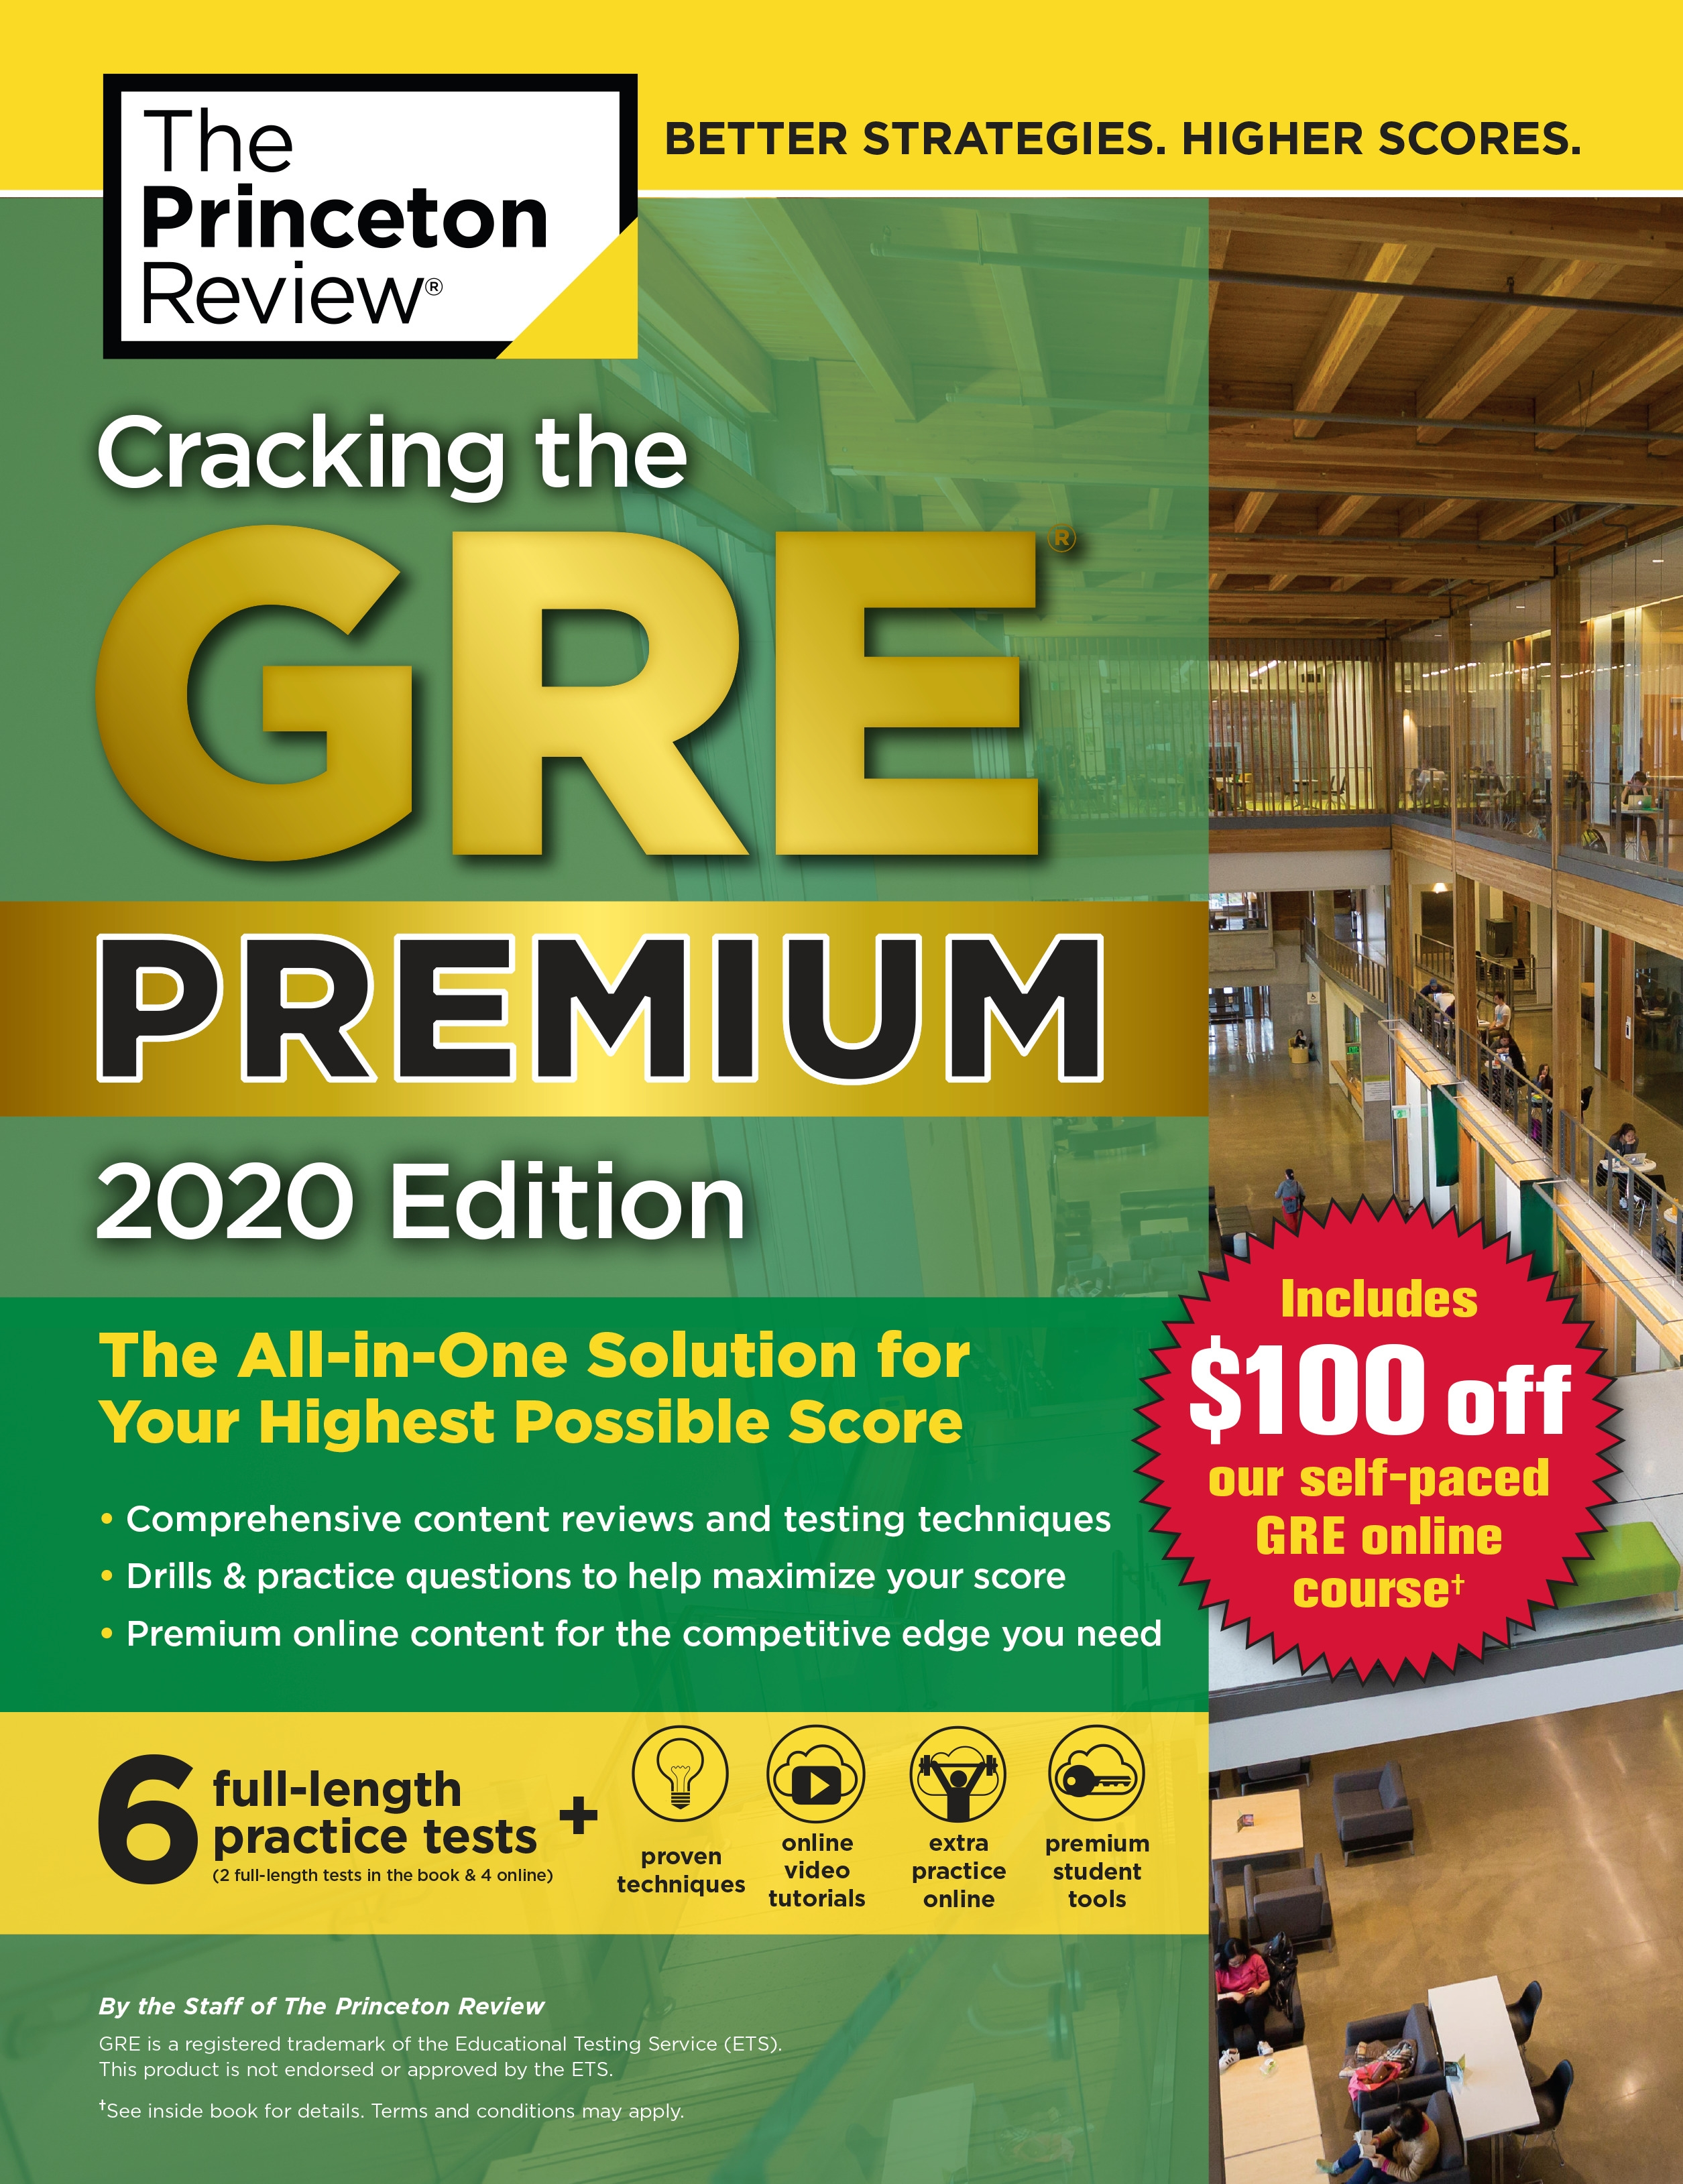 Cracking the GRE Premium Edition with 6 Practice Tests, 2020 (Graduate School Test Preparation) by Princeton Review, ISBN: 9780525568049